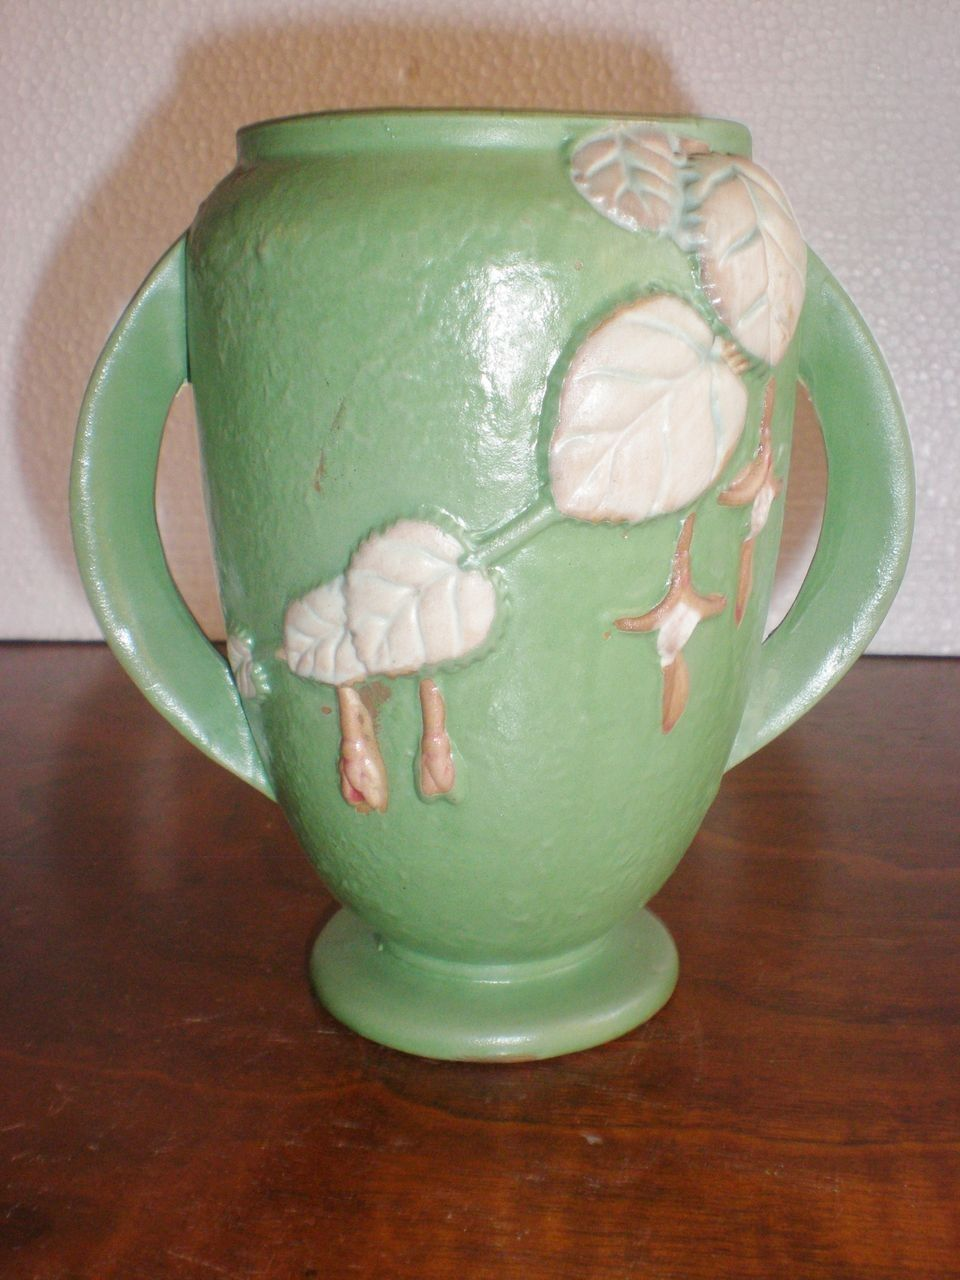 Fuchsia Pattern Roseville Pottery Vase in Matte Mint Green